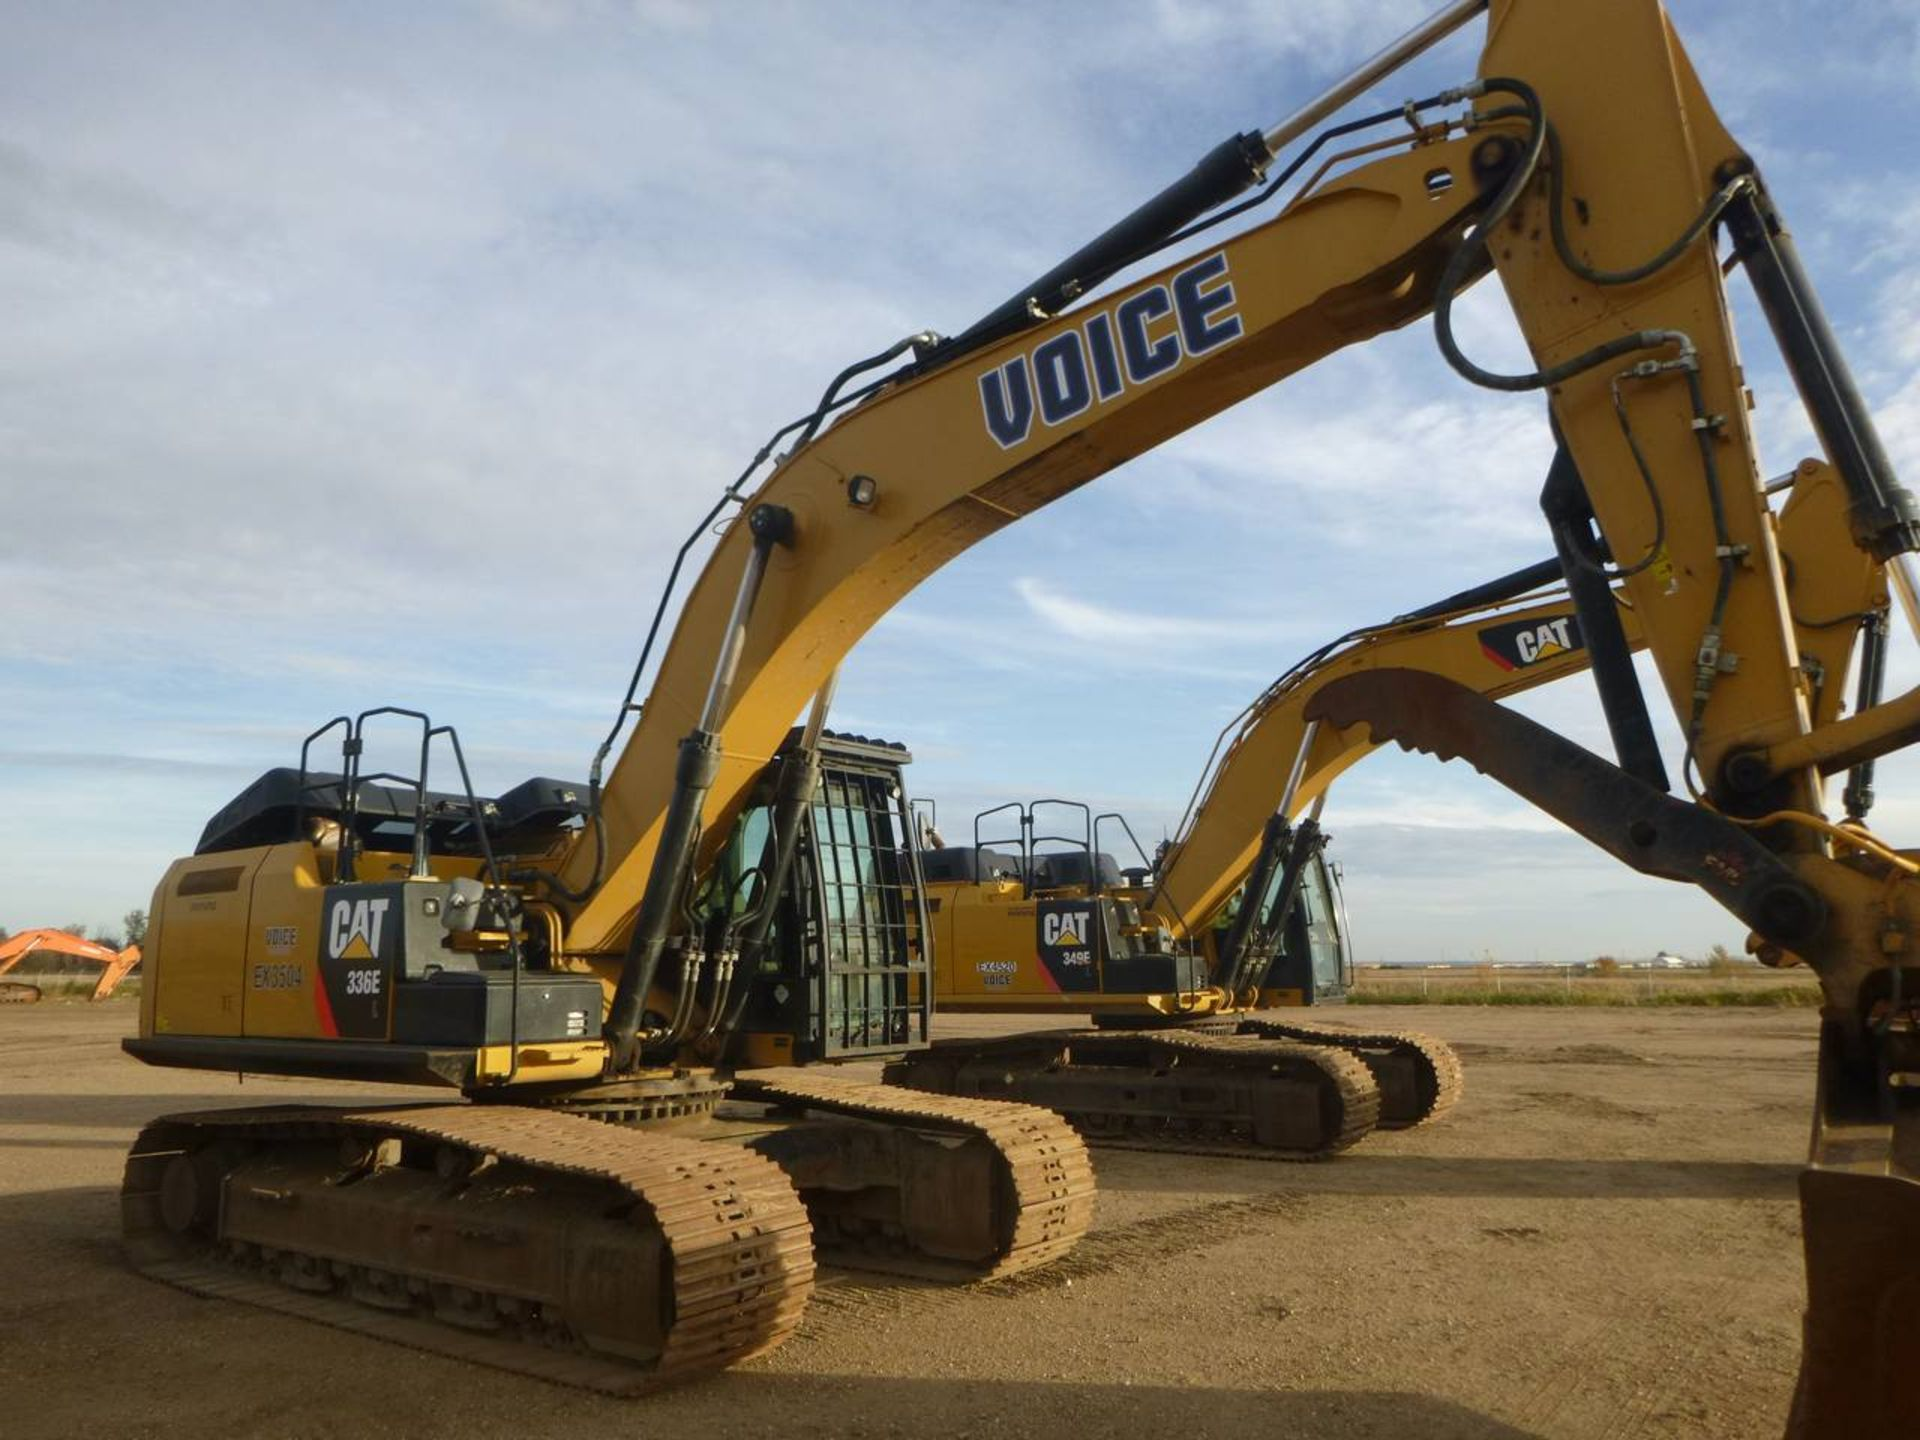 2012 Caterpillar 336E L Excavator - Image 2 of 11